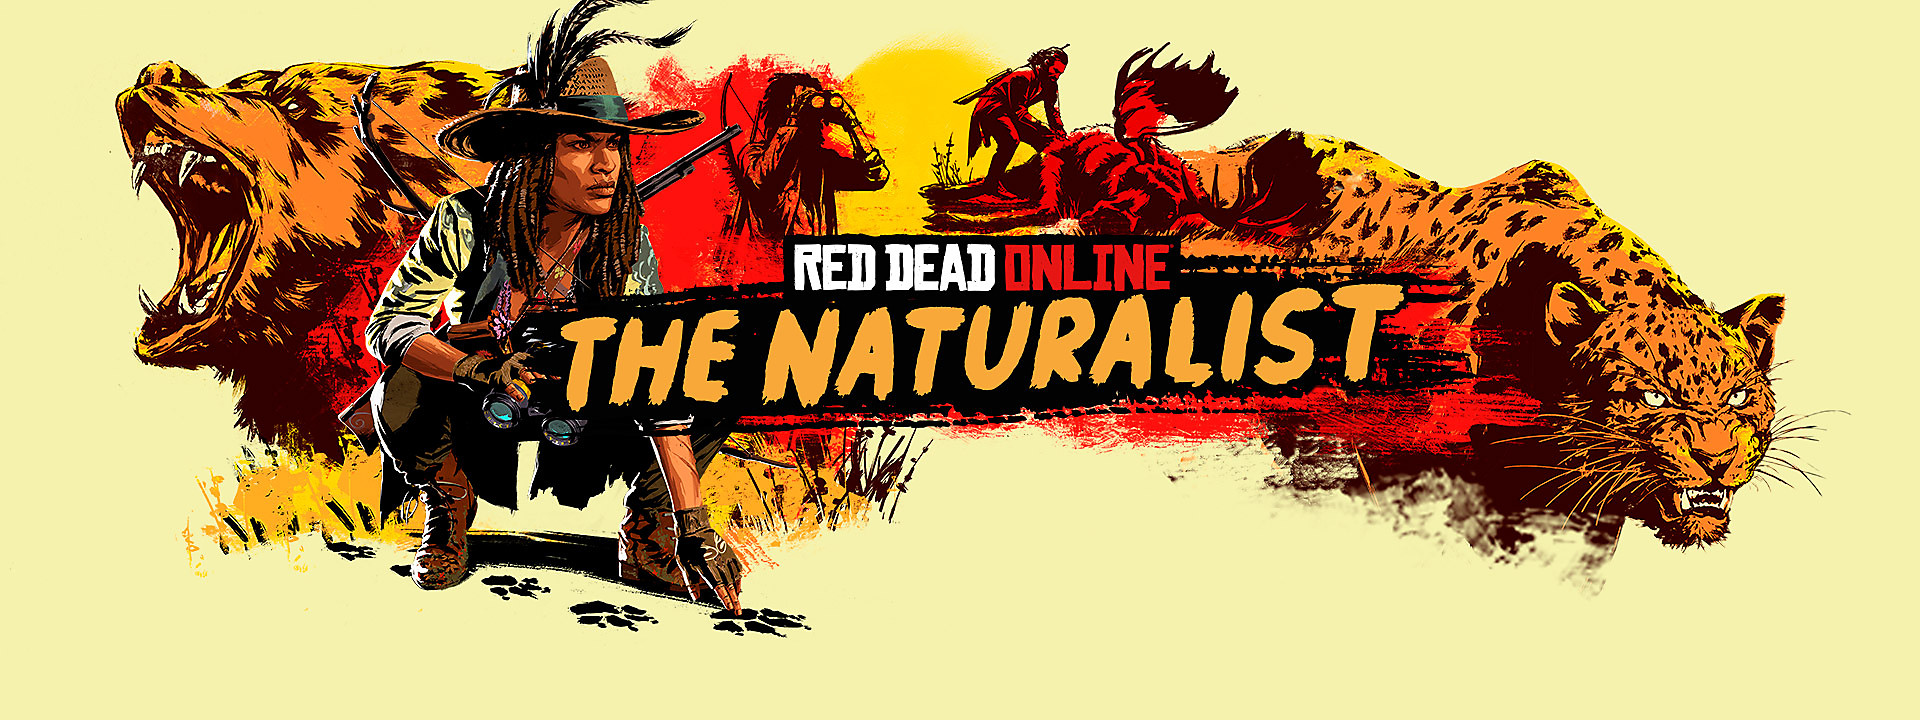 Red Dead Online - The Naturalist Update Now Available